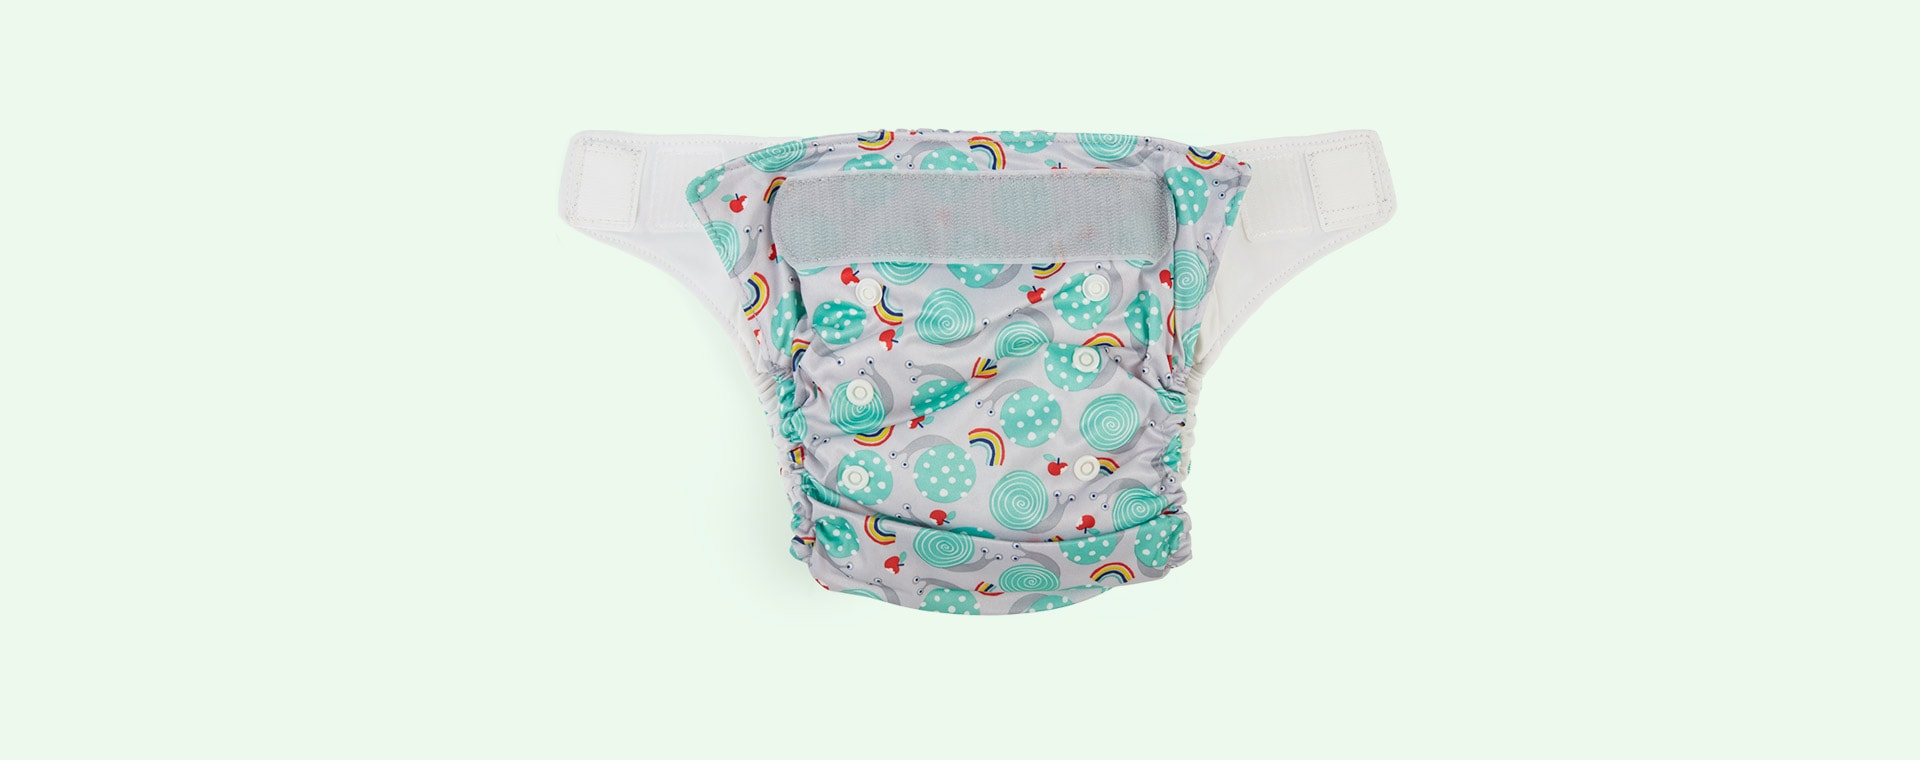 Snail Surprise Bambino Mio Miosolo All-In-One Nappy